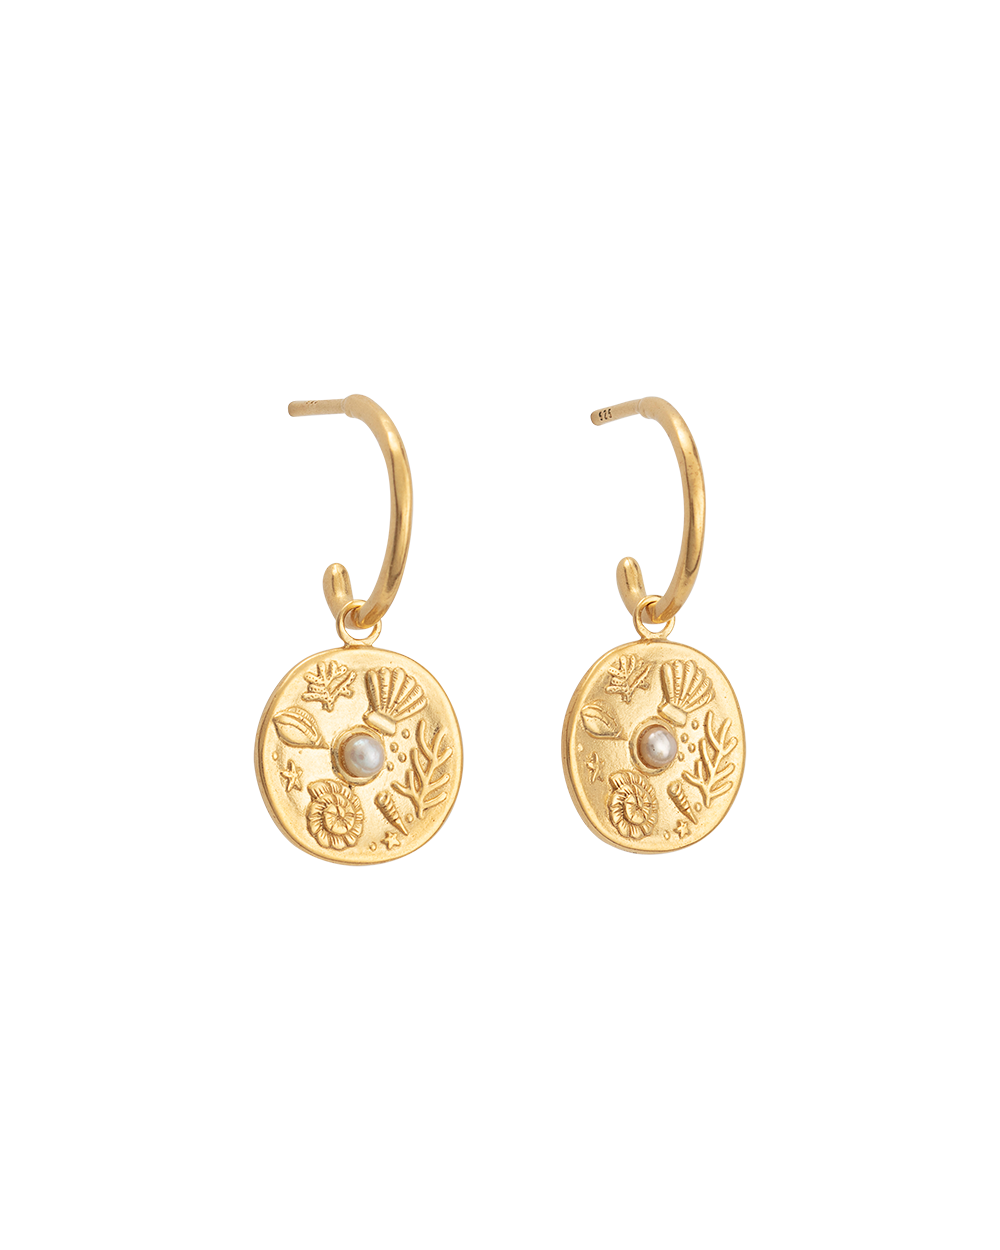 BY THE SEA HOOPS (18K-GOLD-PLATED)-FRONT